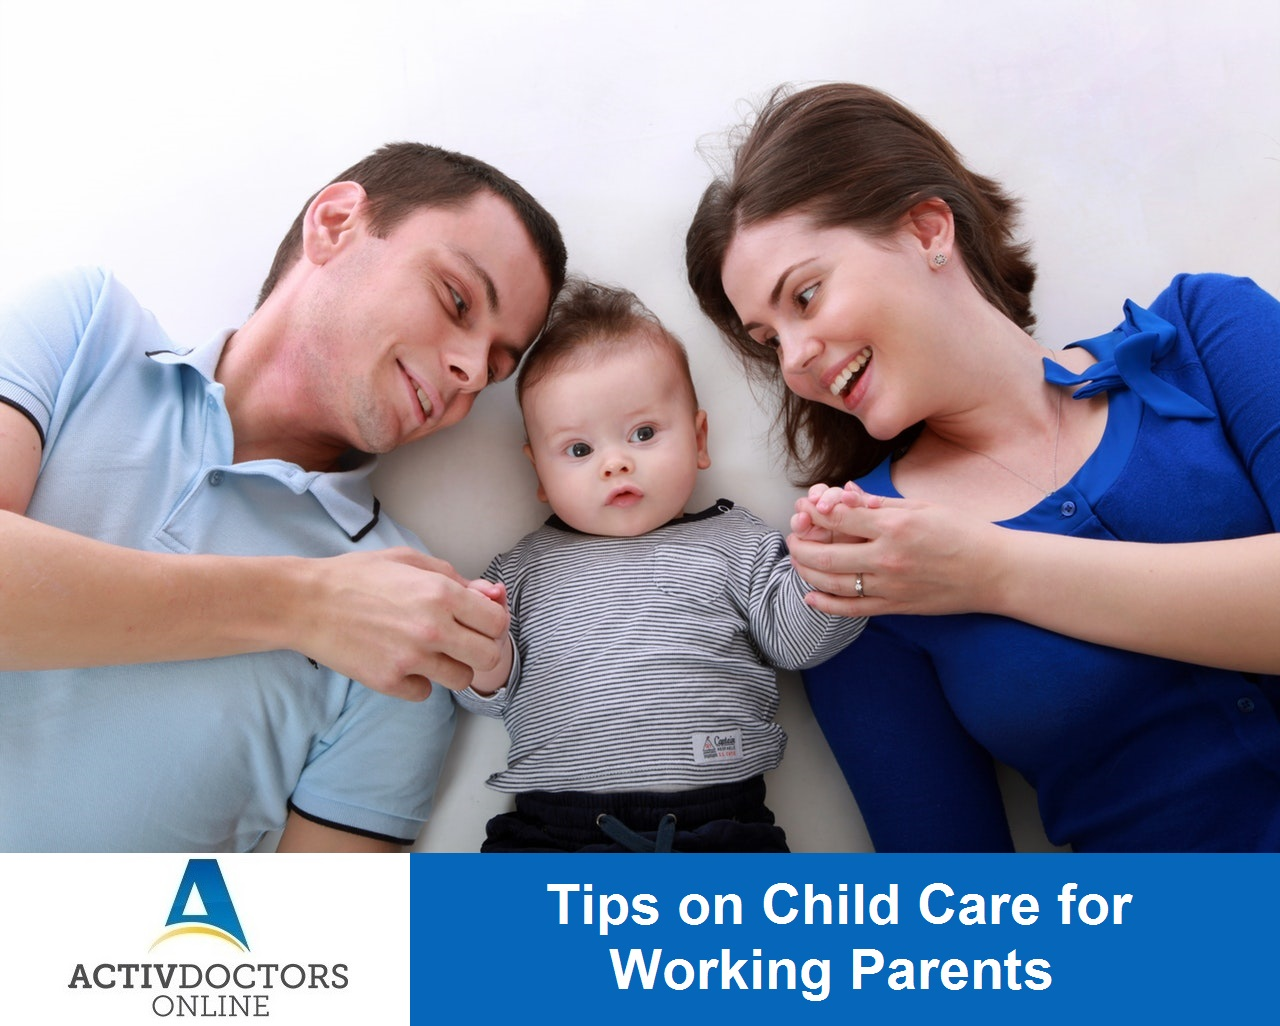 Tips on Child Care for Working Parents